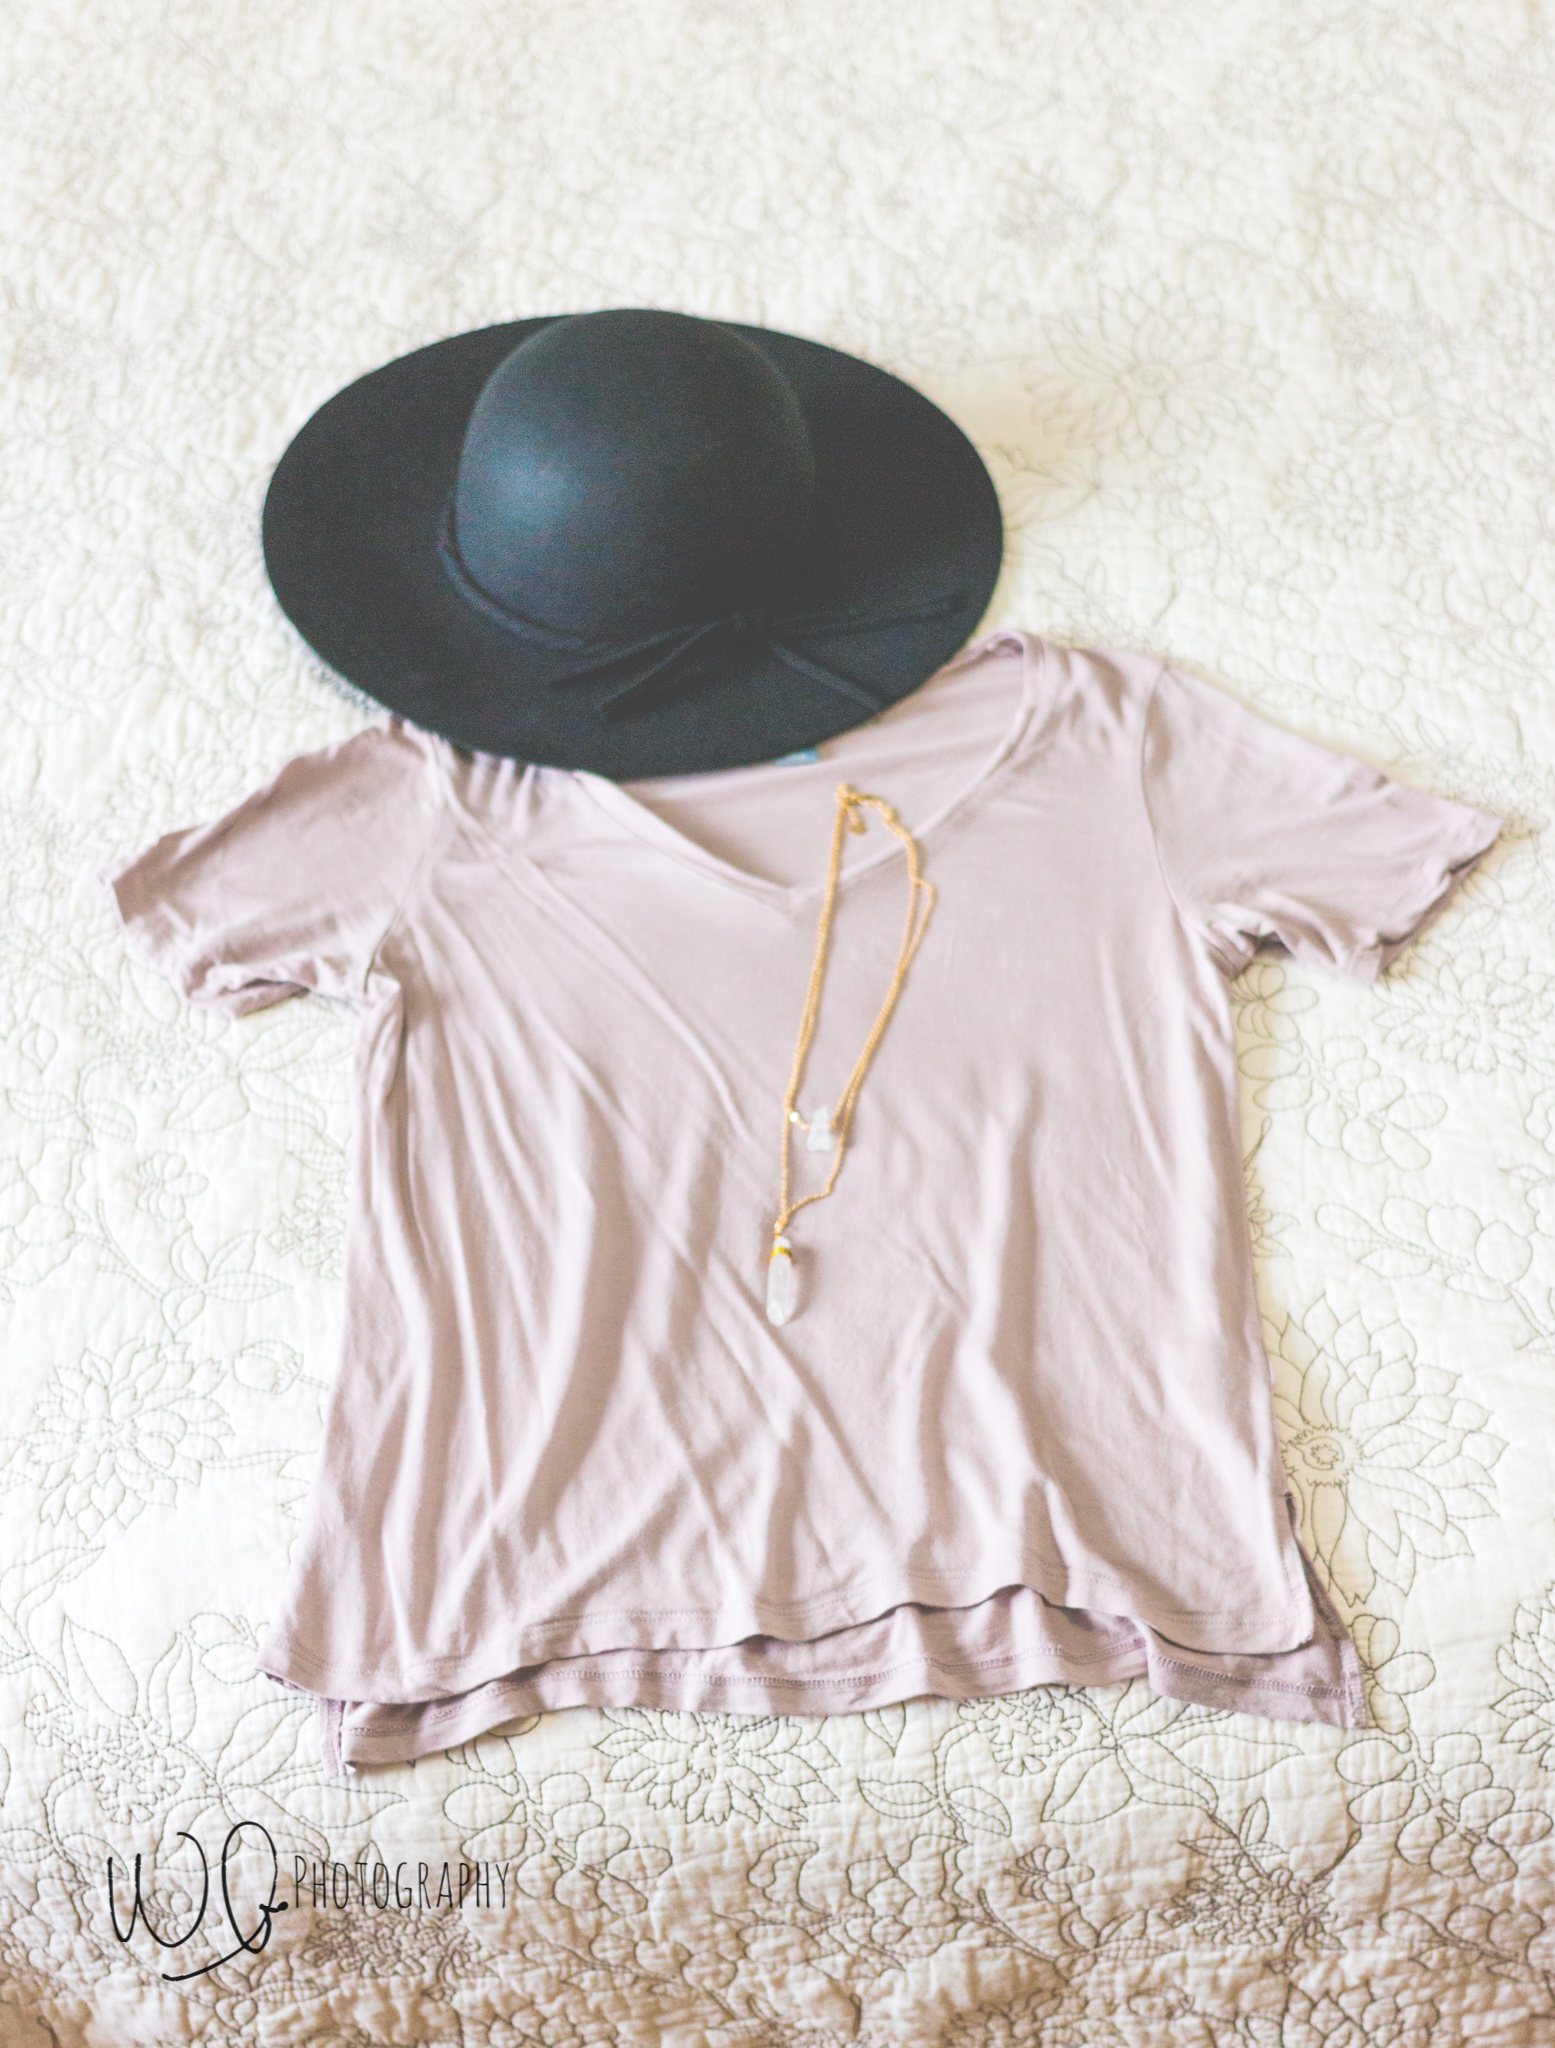 3 products I can't live without. Old Navy